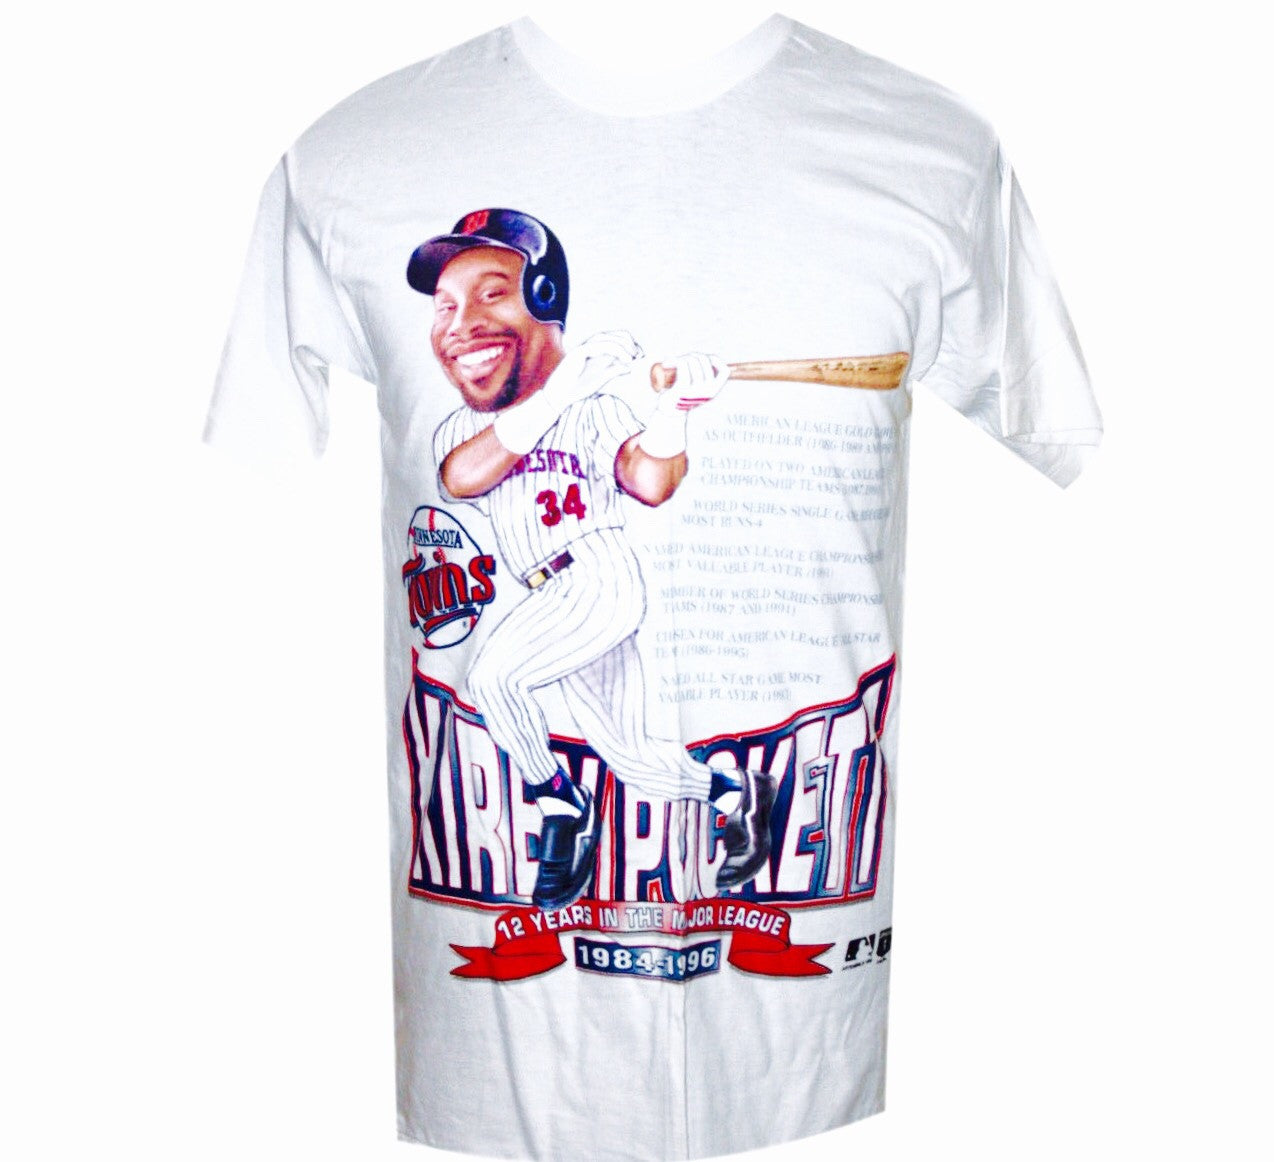 Kirby Puckett Twins 90's Shirt - And Still